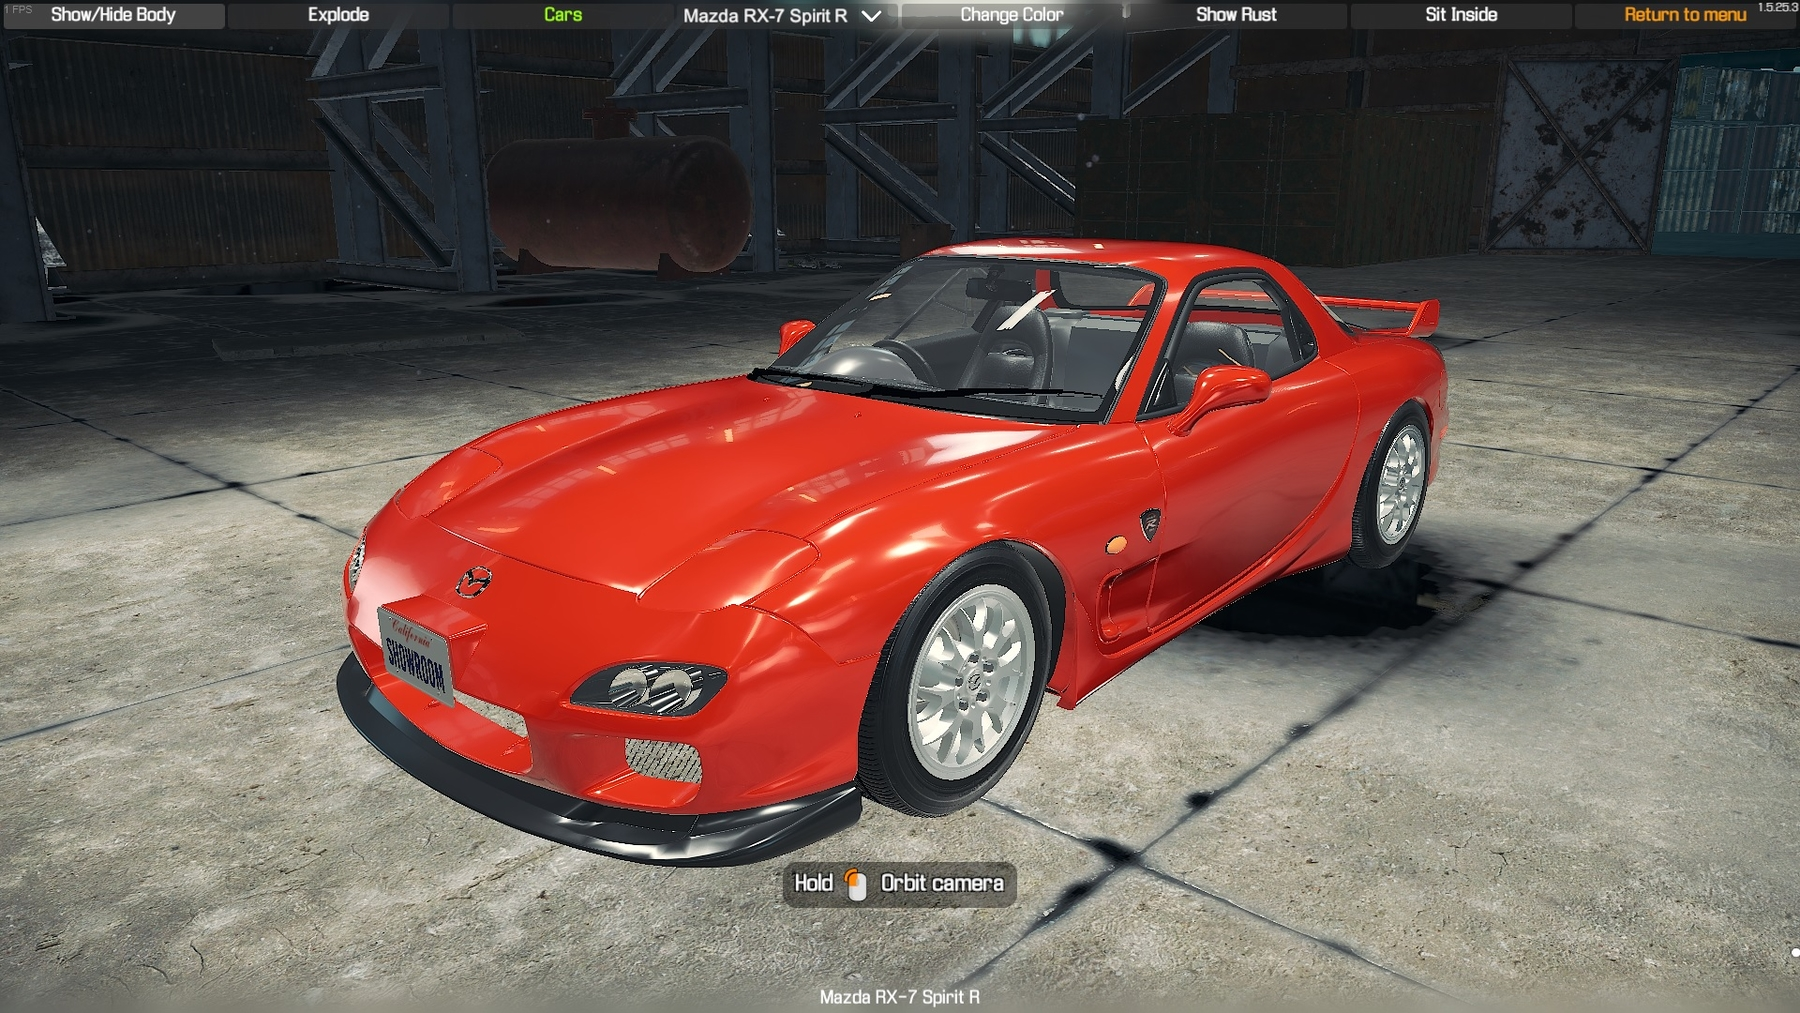 2002 Mazda Rx7 Spirit R Type A - CMS 2018 Cars - Car